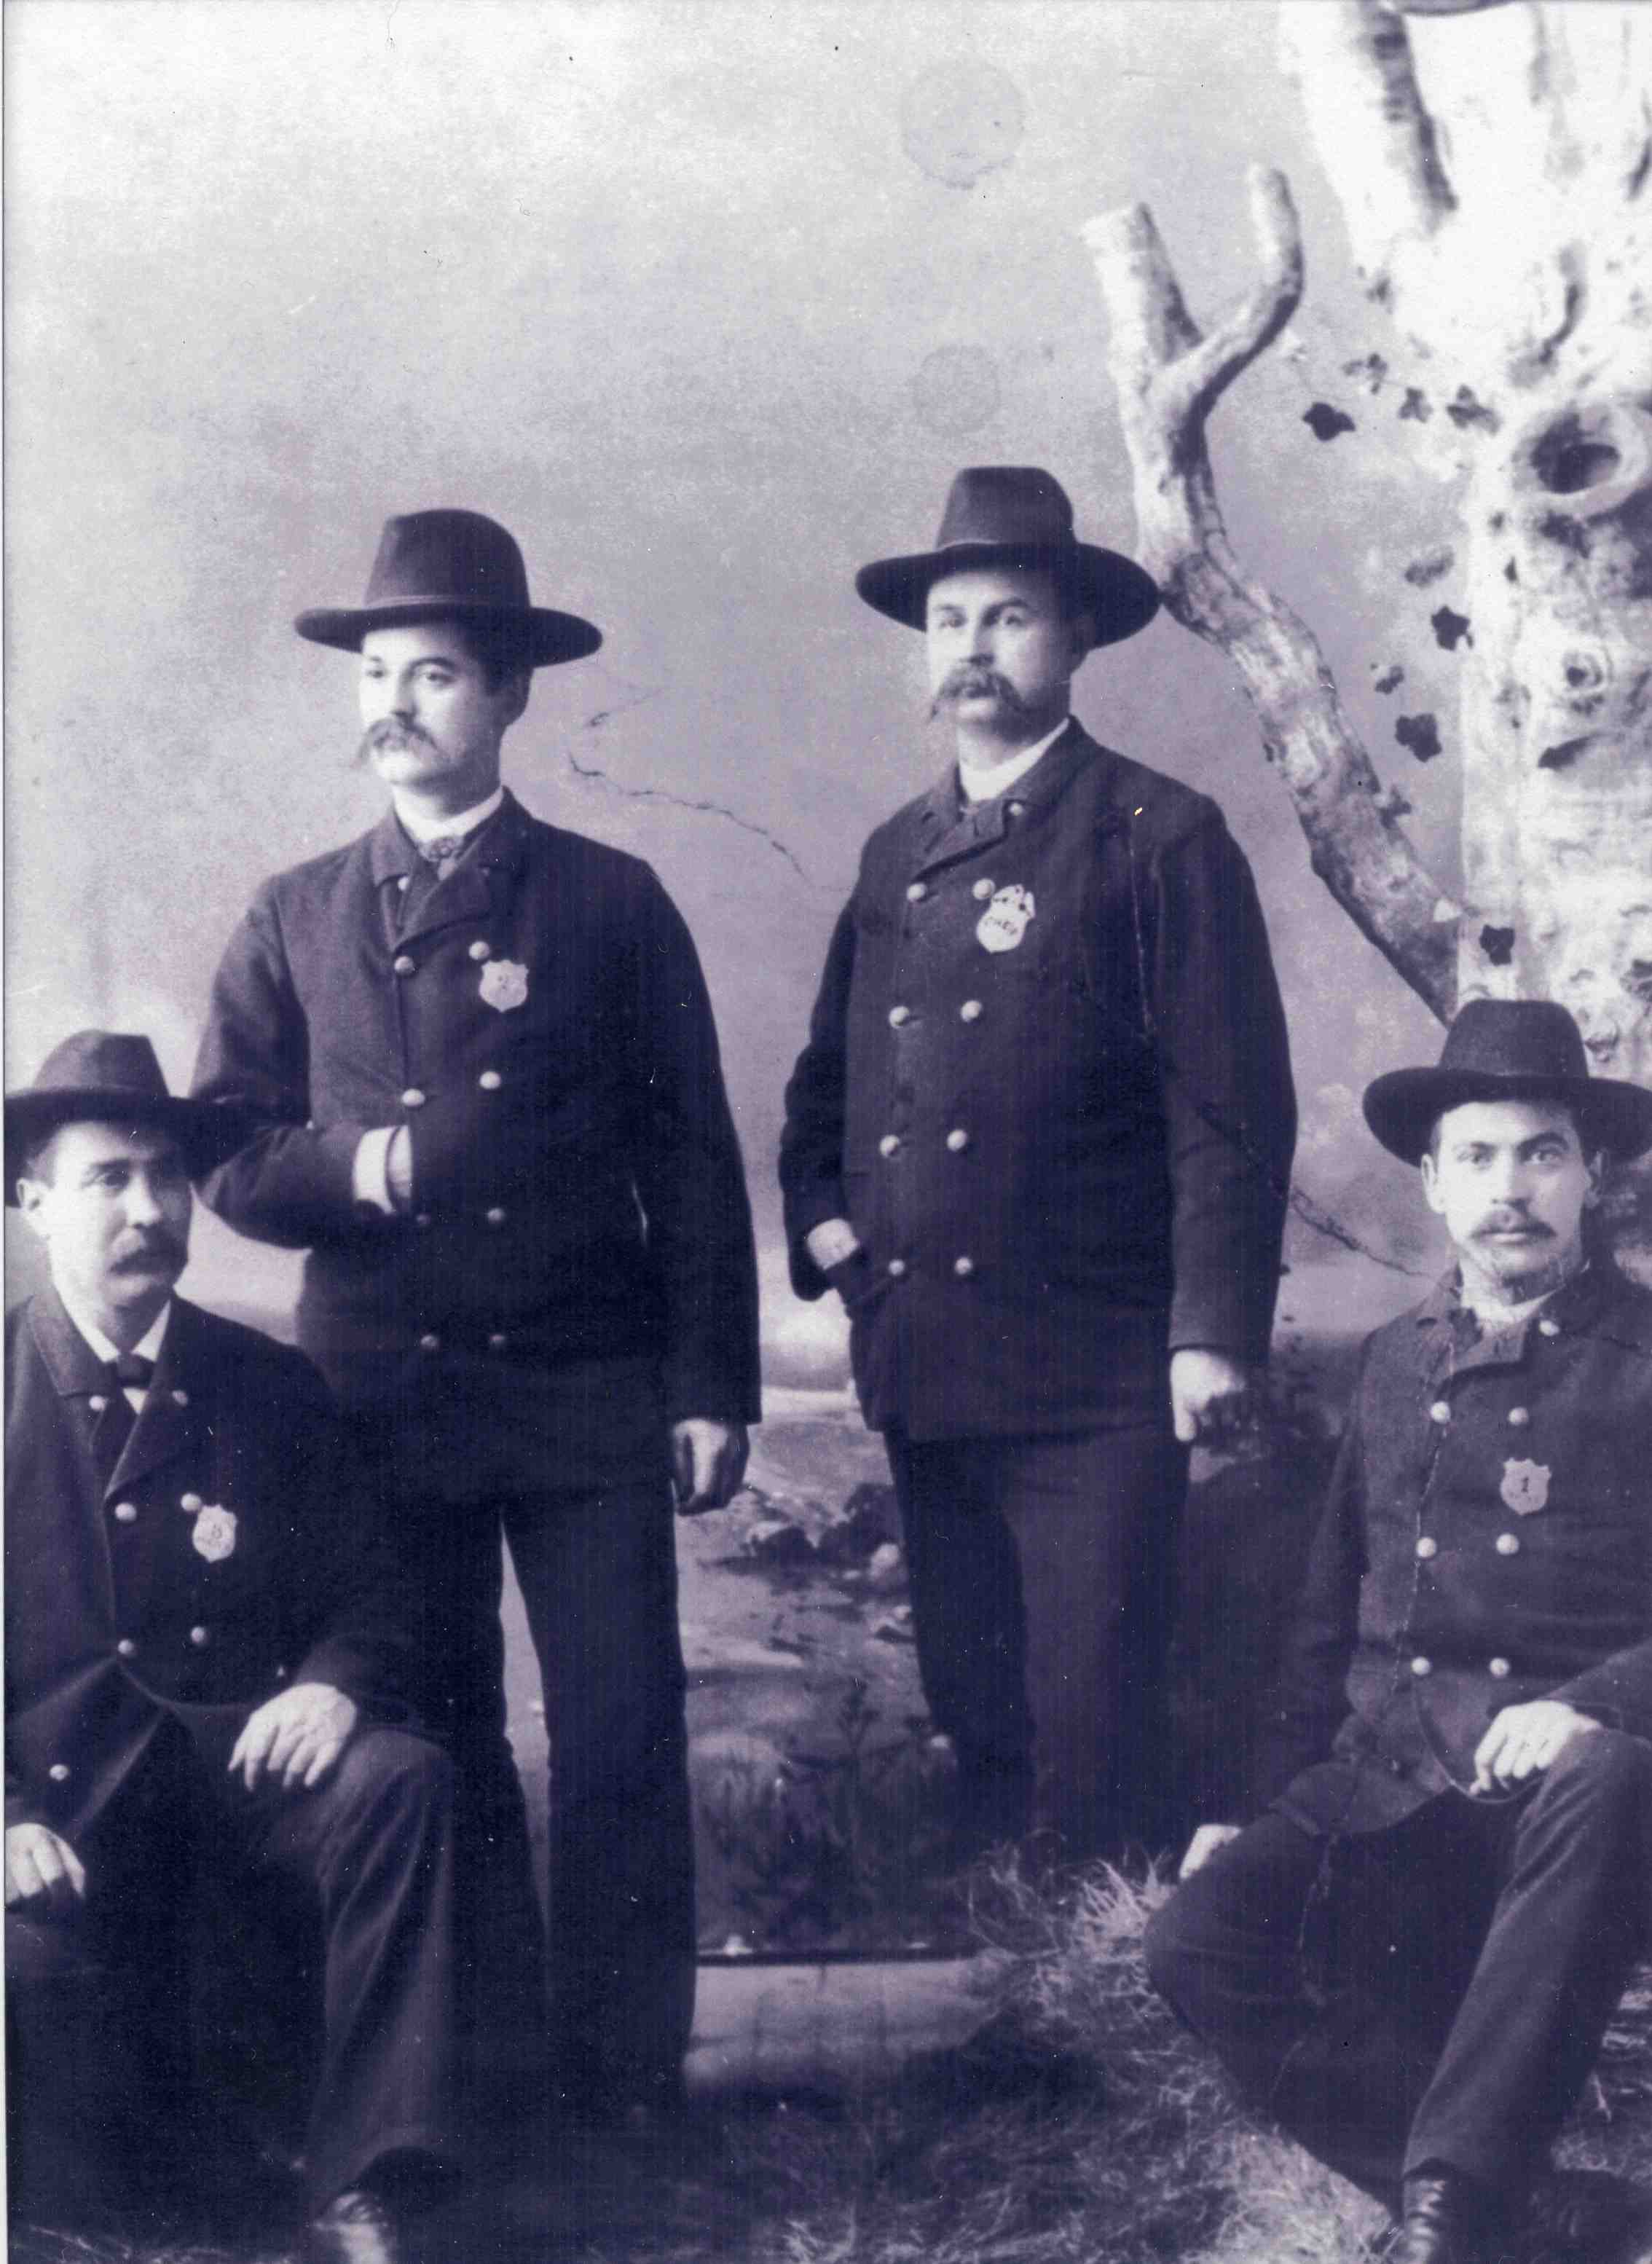 Earliest known photograph of members of the Ann Arbor Police Department, ca.1871 image